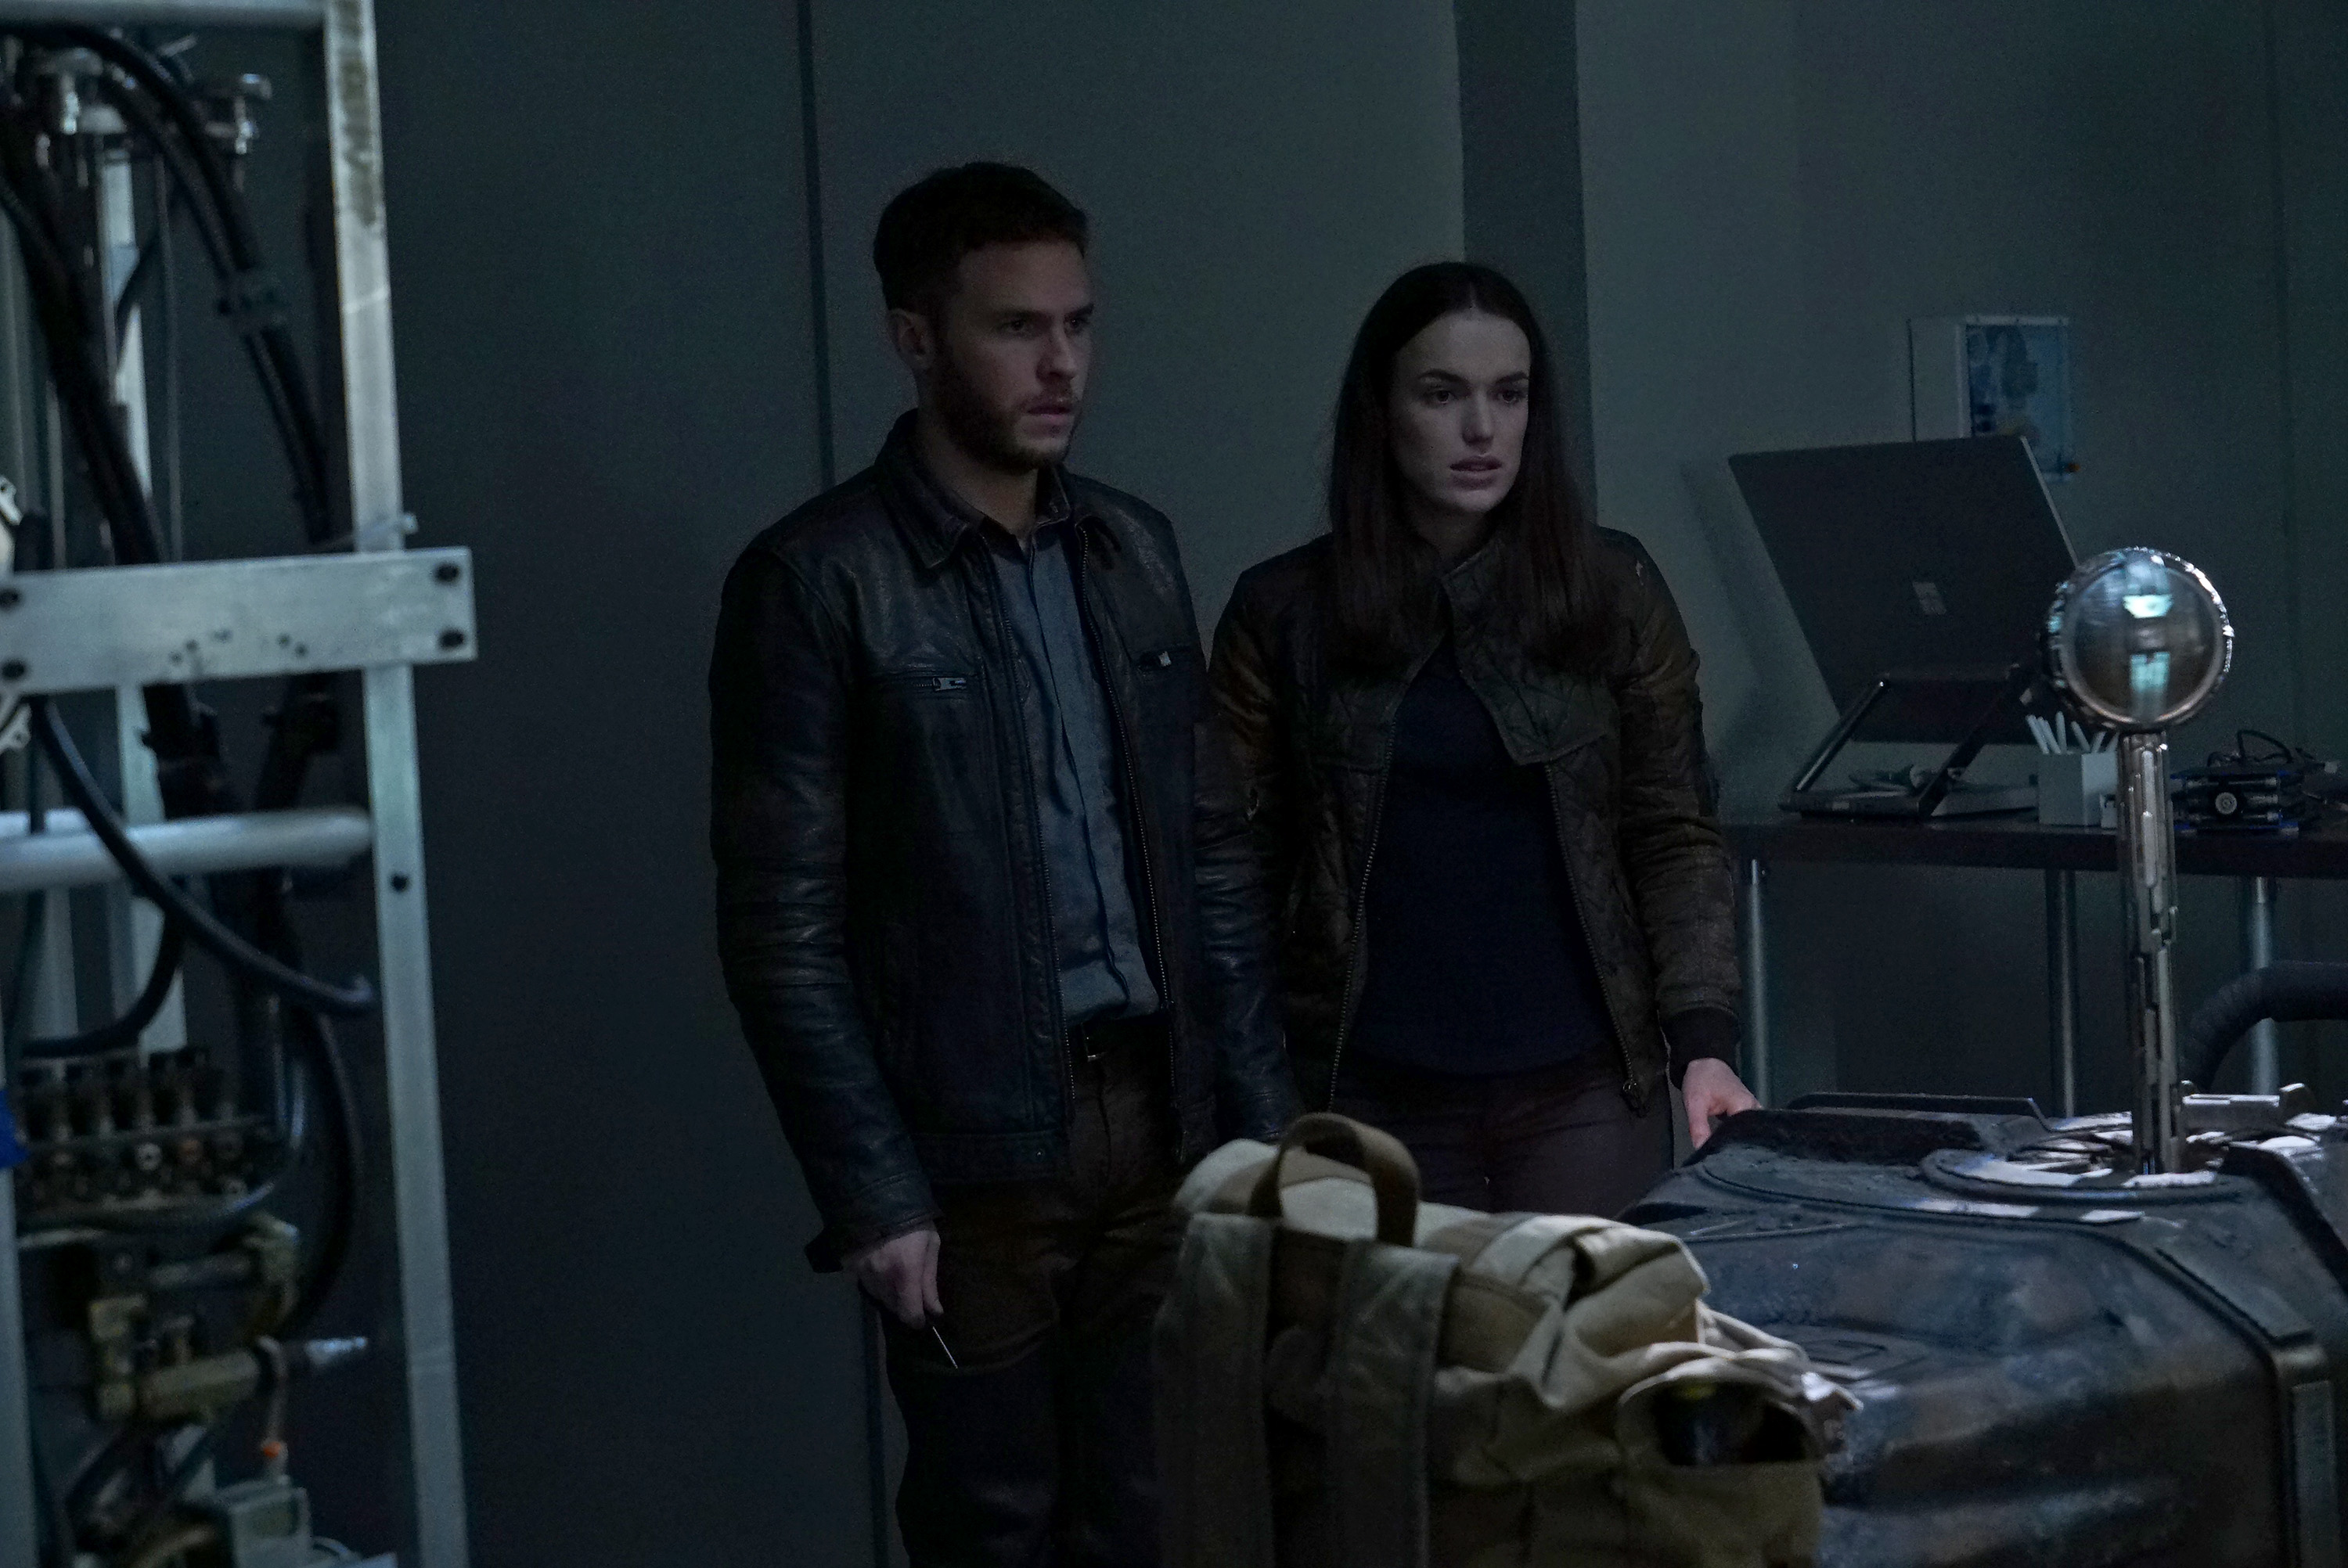 all the comforts of home Video - marvel's agents of shield 5x11 promo all the comforts of home (hd) season 5 episode 11 promo | marvel cinematic universe wiki .